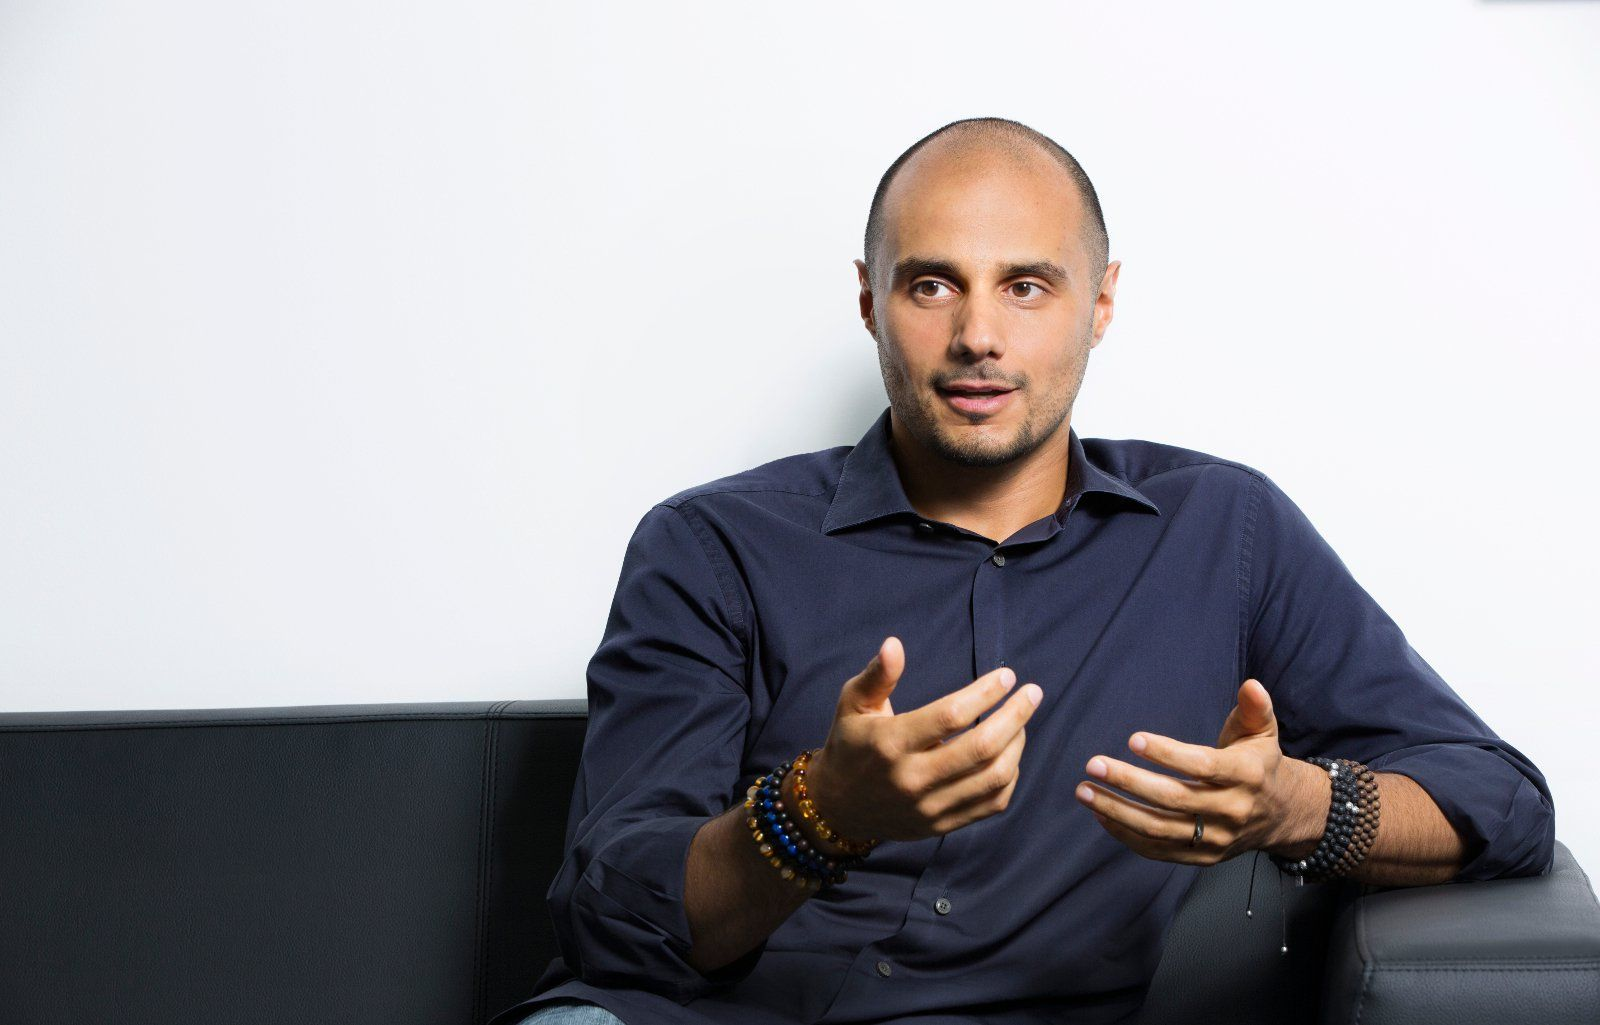 Despite his ordinary appearance, Pince Khaled bin Alwaleed is anything but ordinary. He is the son of the famously wealthy Alwaleed bin Talal bin Abdulaziz al Saud who has been affectionately called the Bill Gates of Saudi Arabia. He lived a lavish life as a youth until something changed him forever.